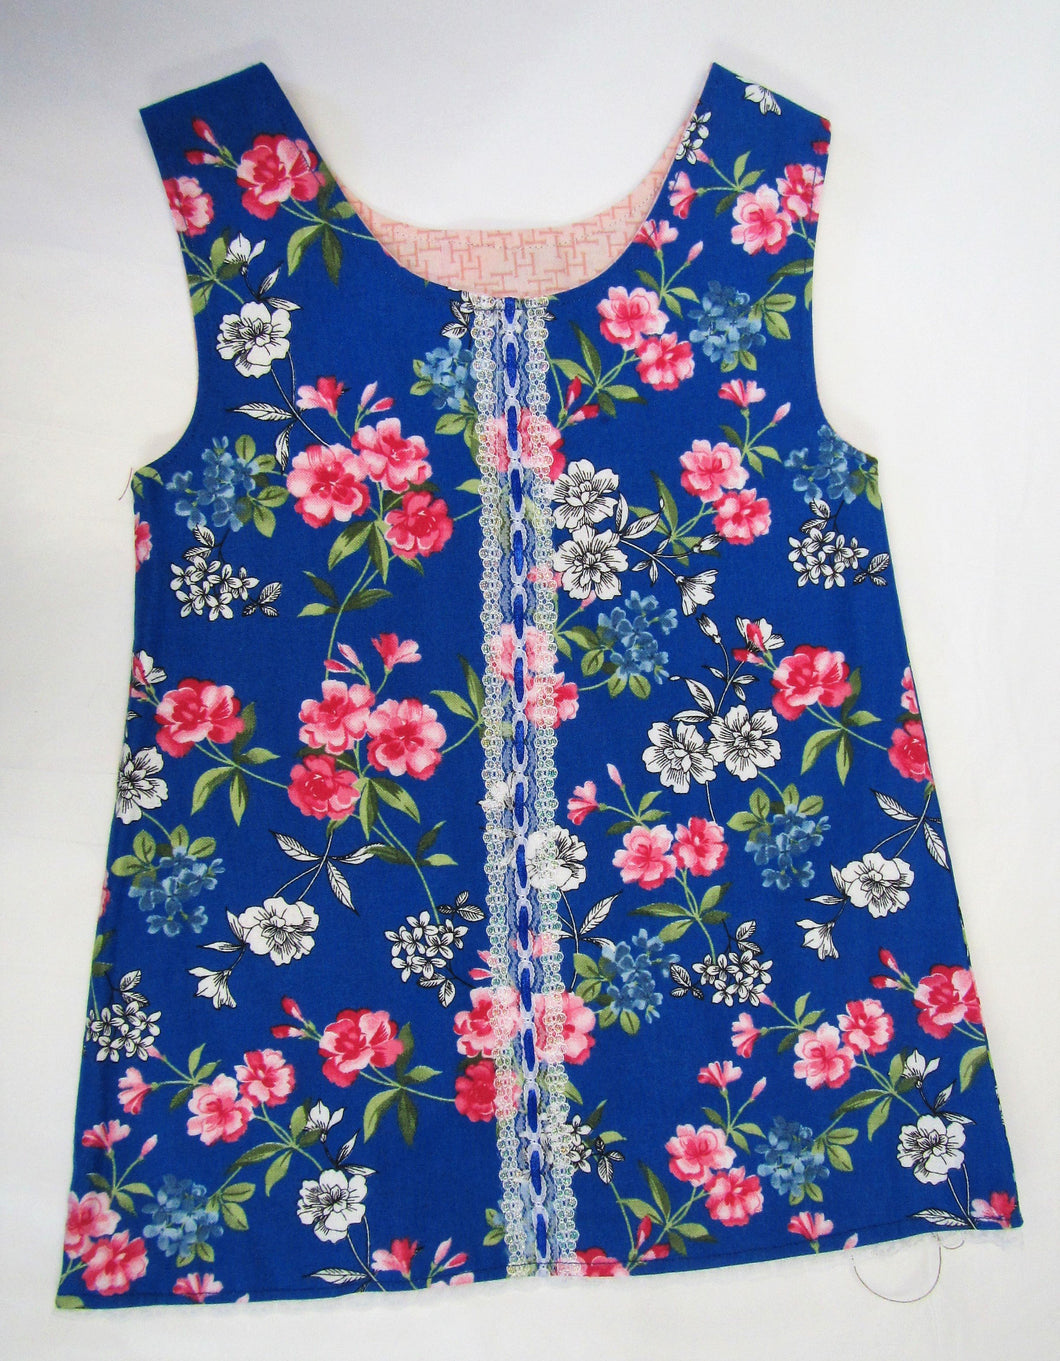 Hand crafted blue and pink floral pinafore 9-12 months